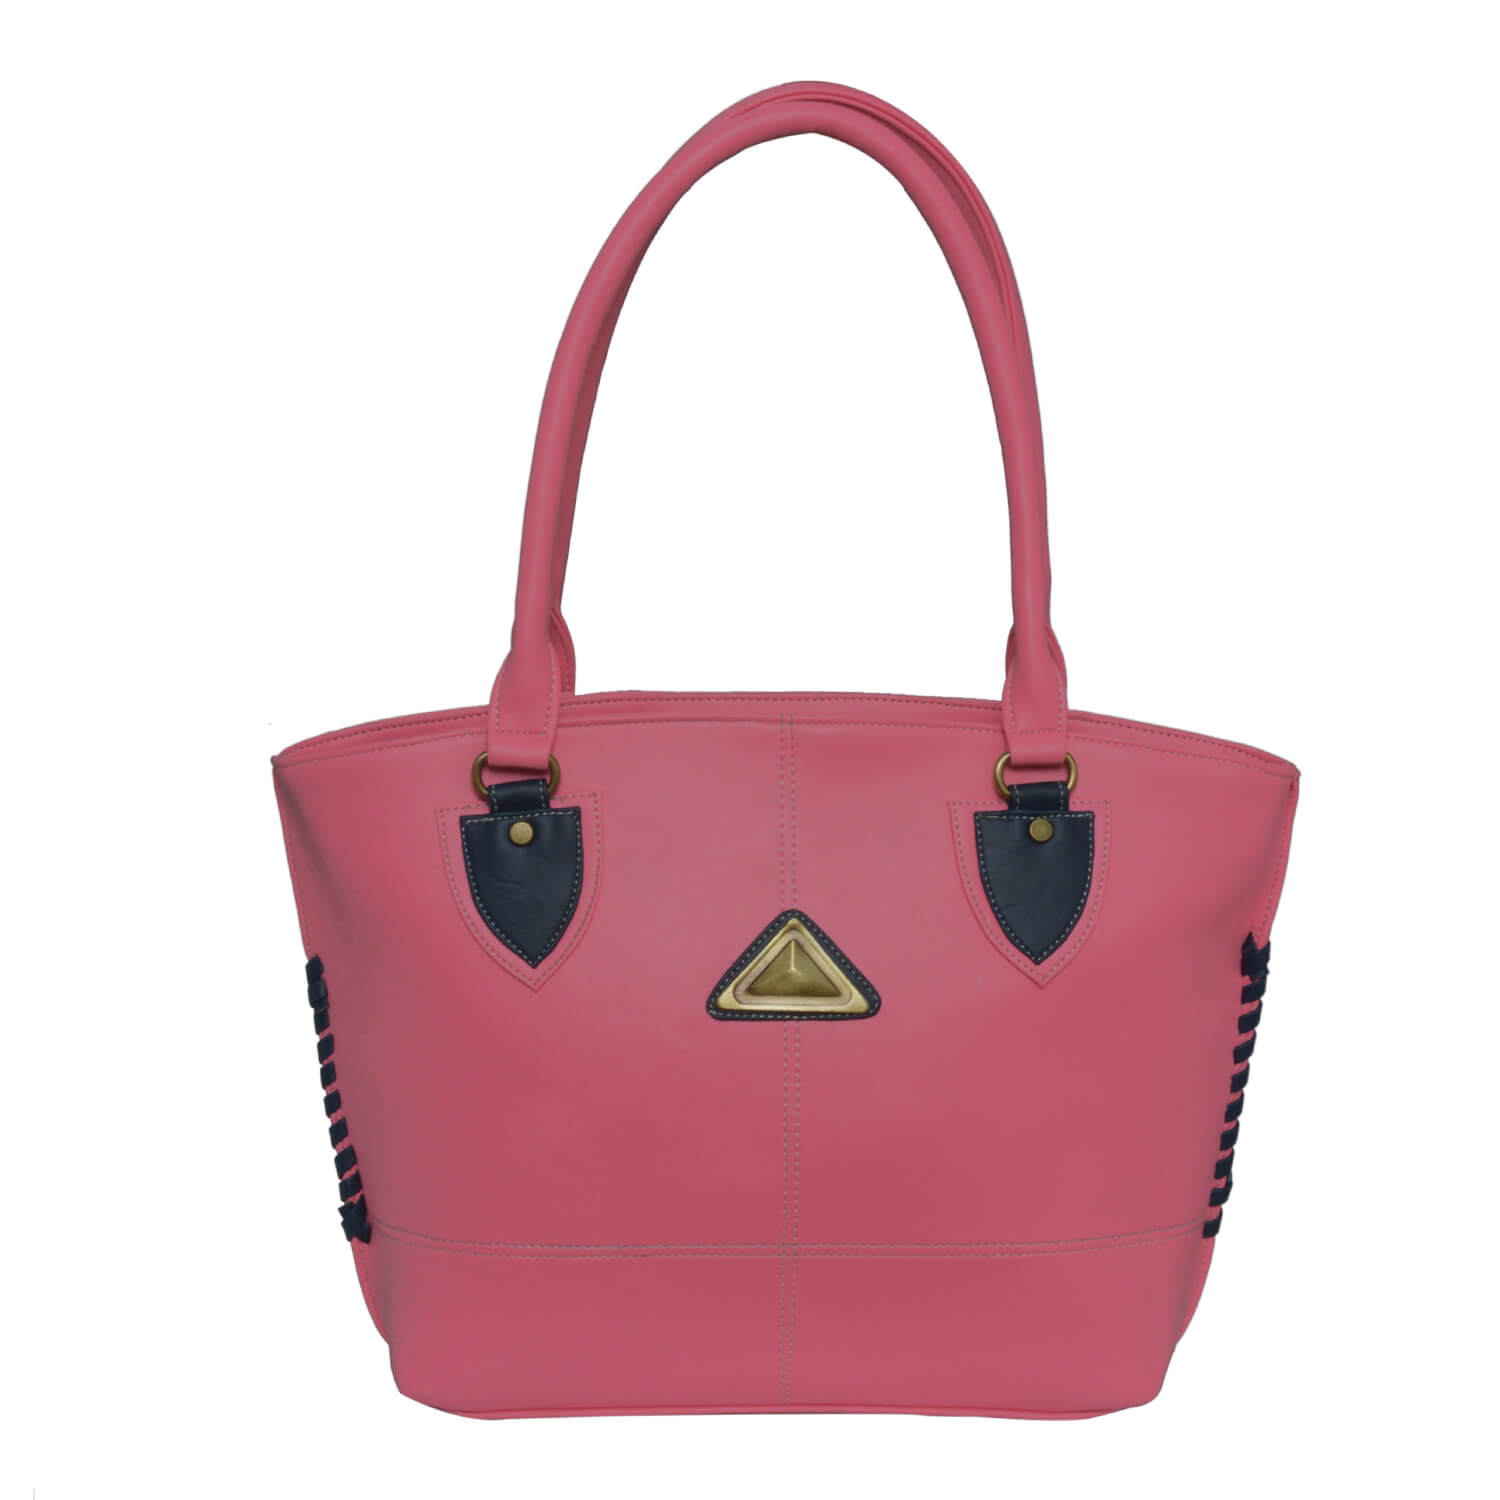 Right Choice RCH318 women's handbags in a modern type